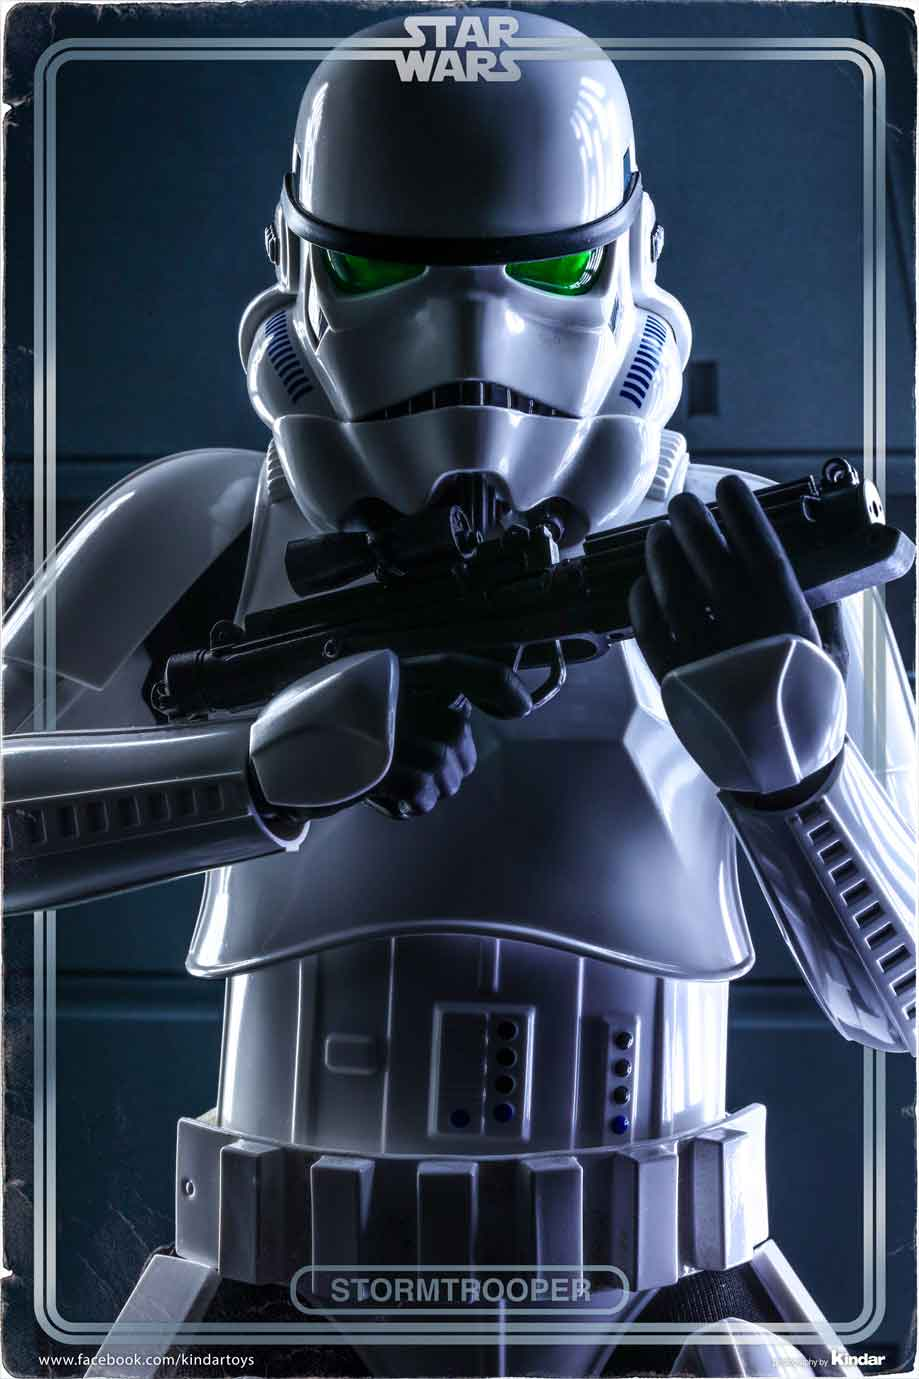 bloggerreview_kindar_stormtrooper (17)